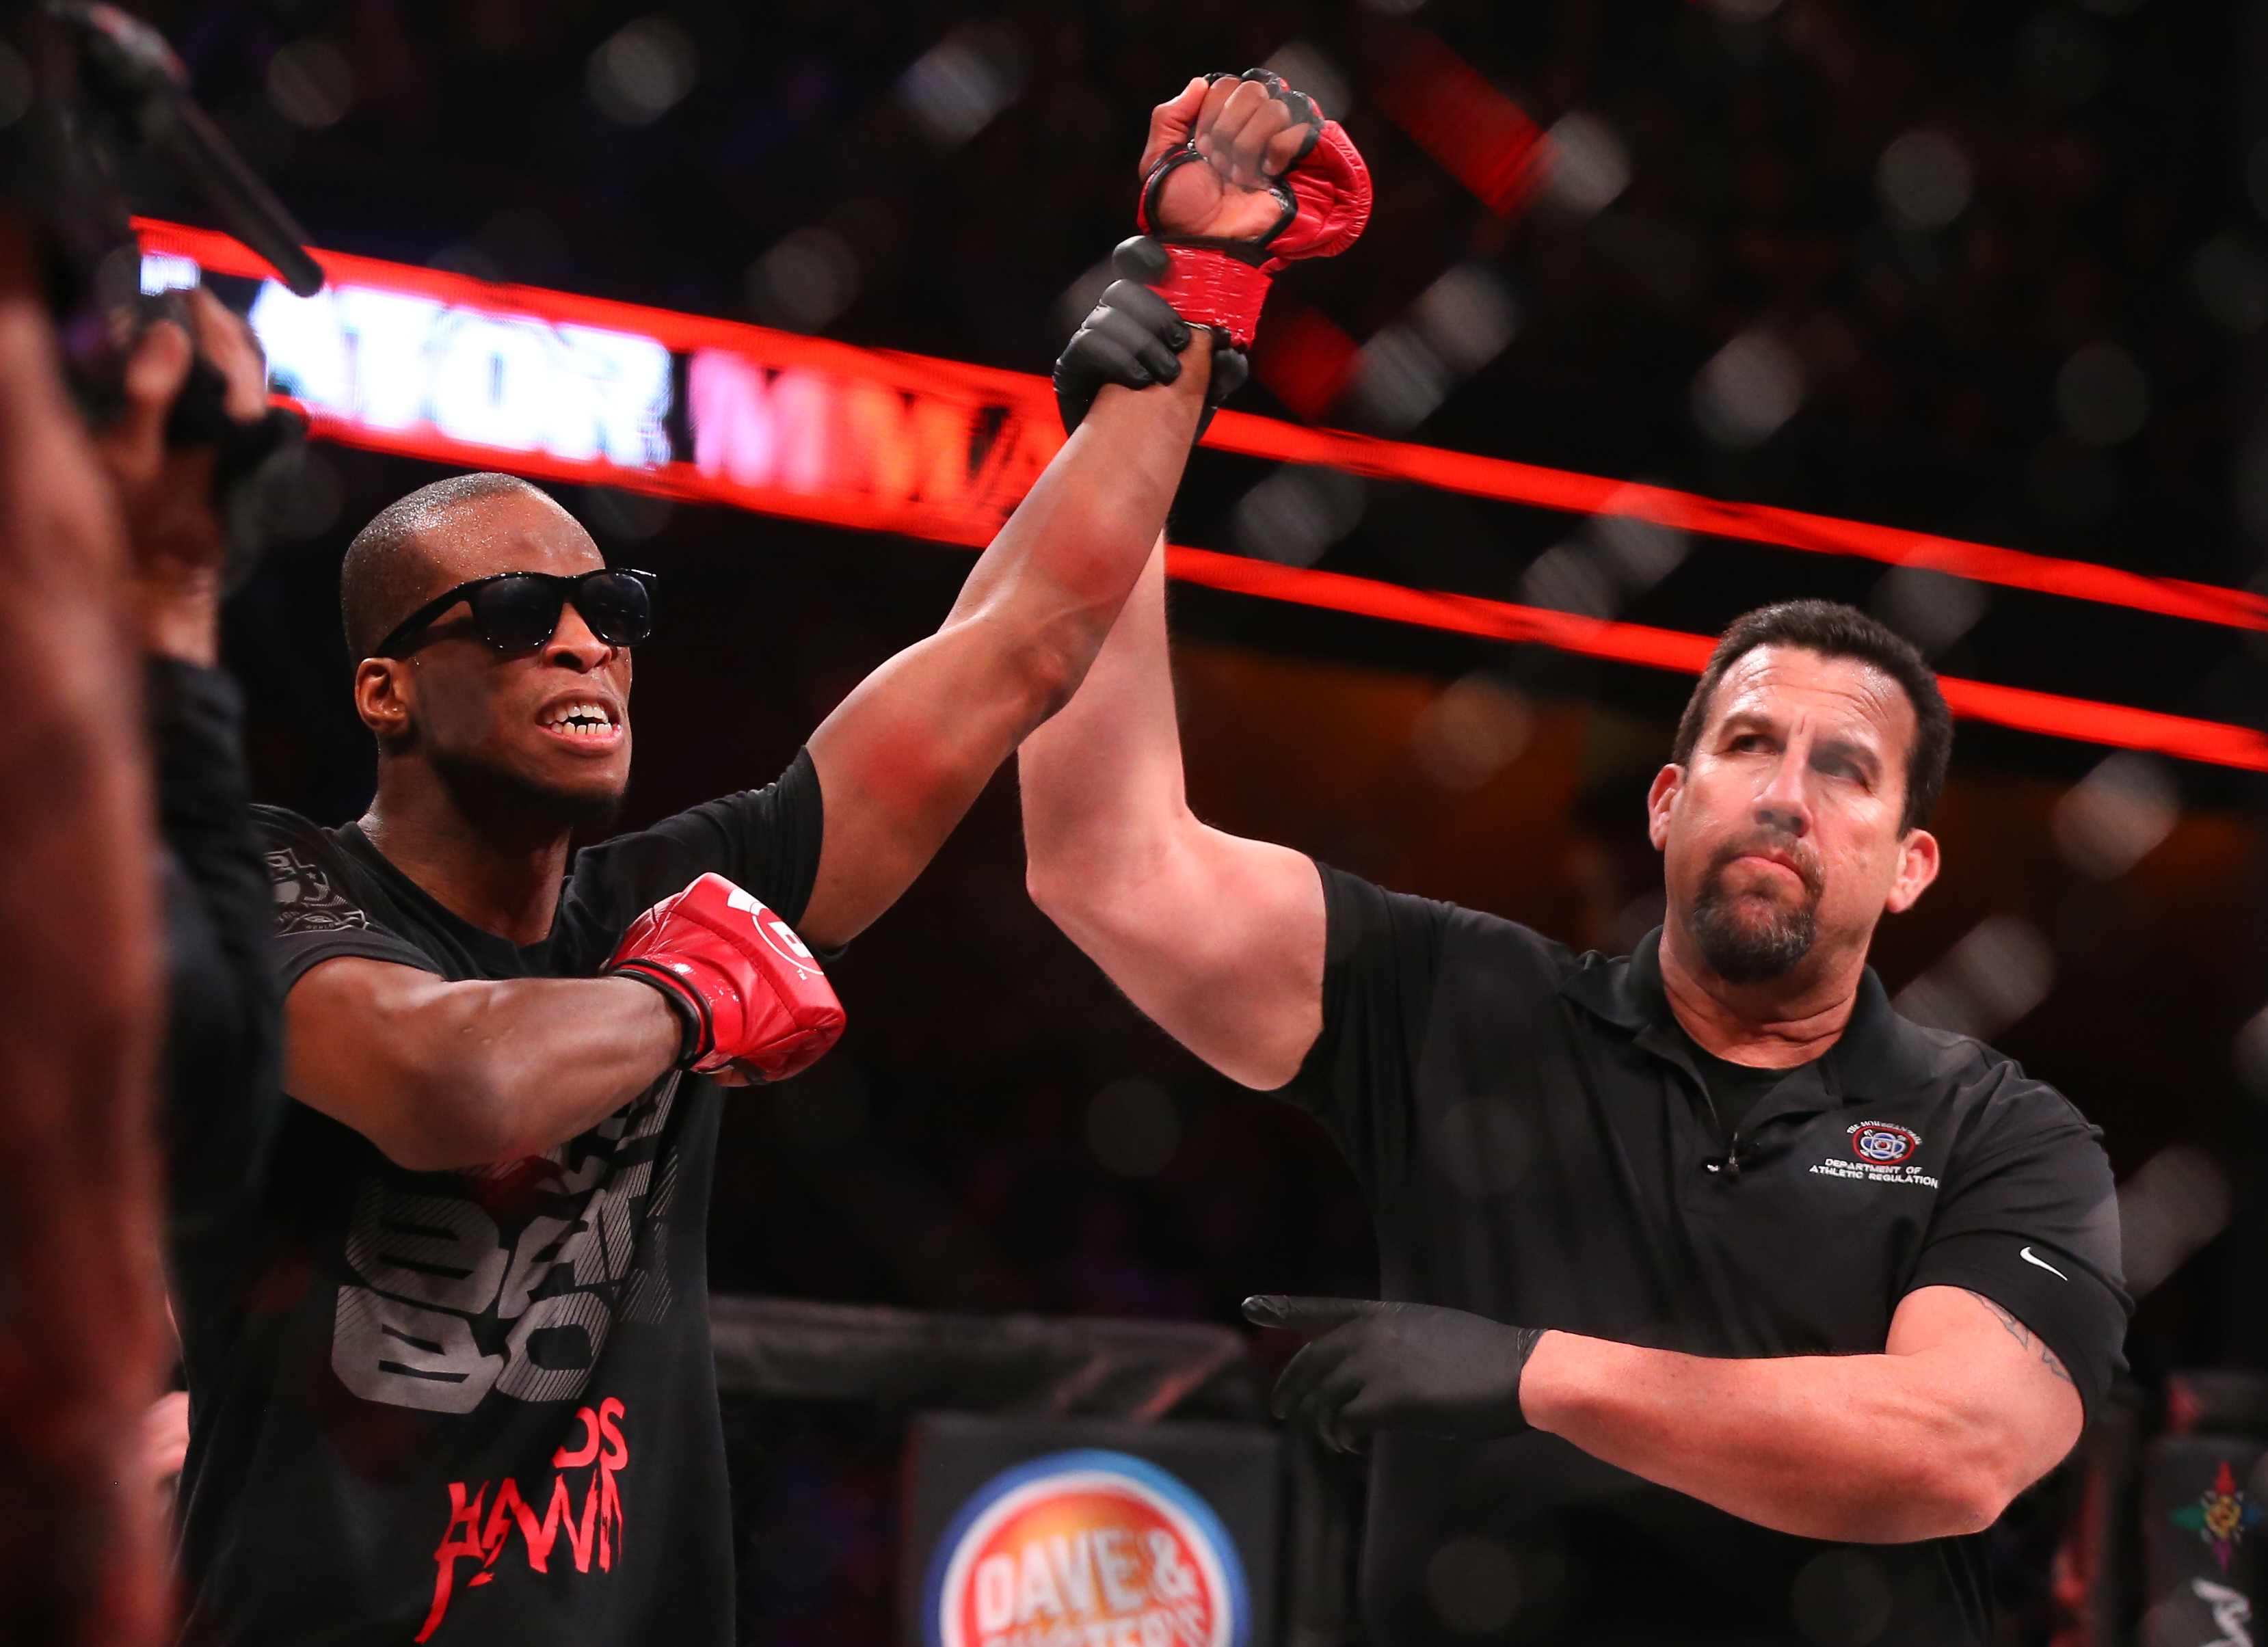 Michael Venom Page insists he has lost all respect for Paul Daley after Bellator 179 altercation